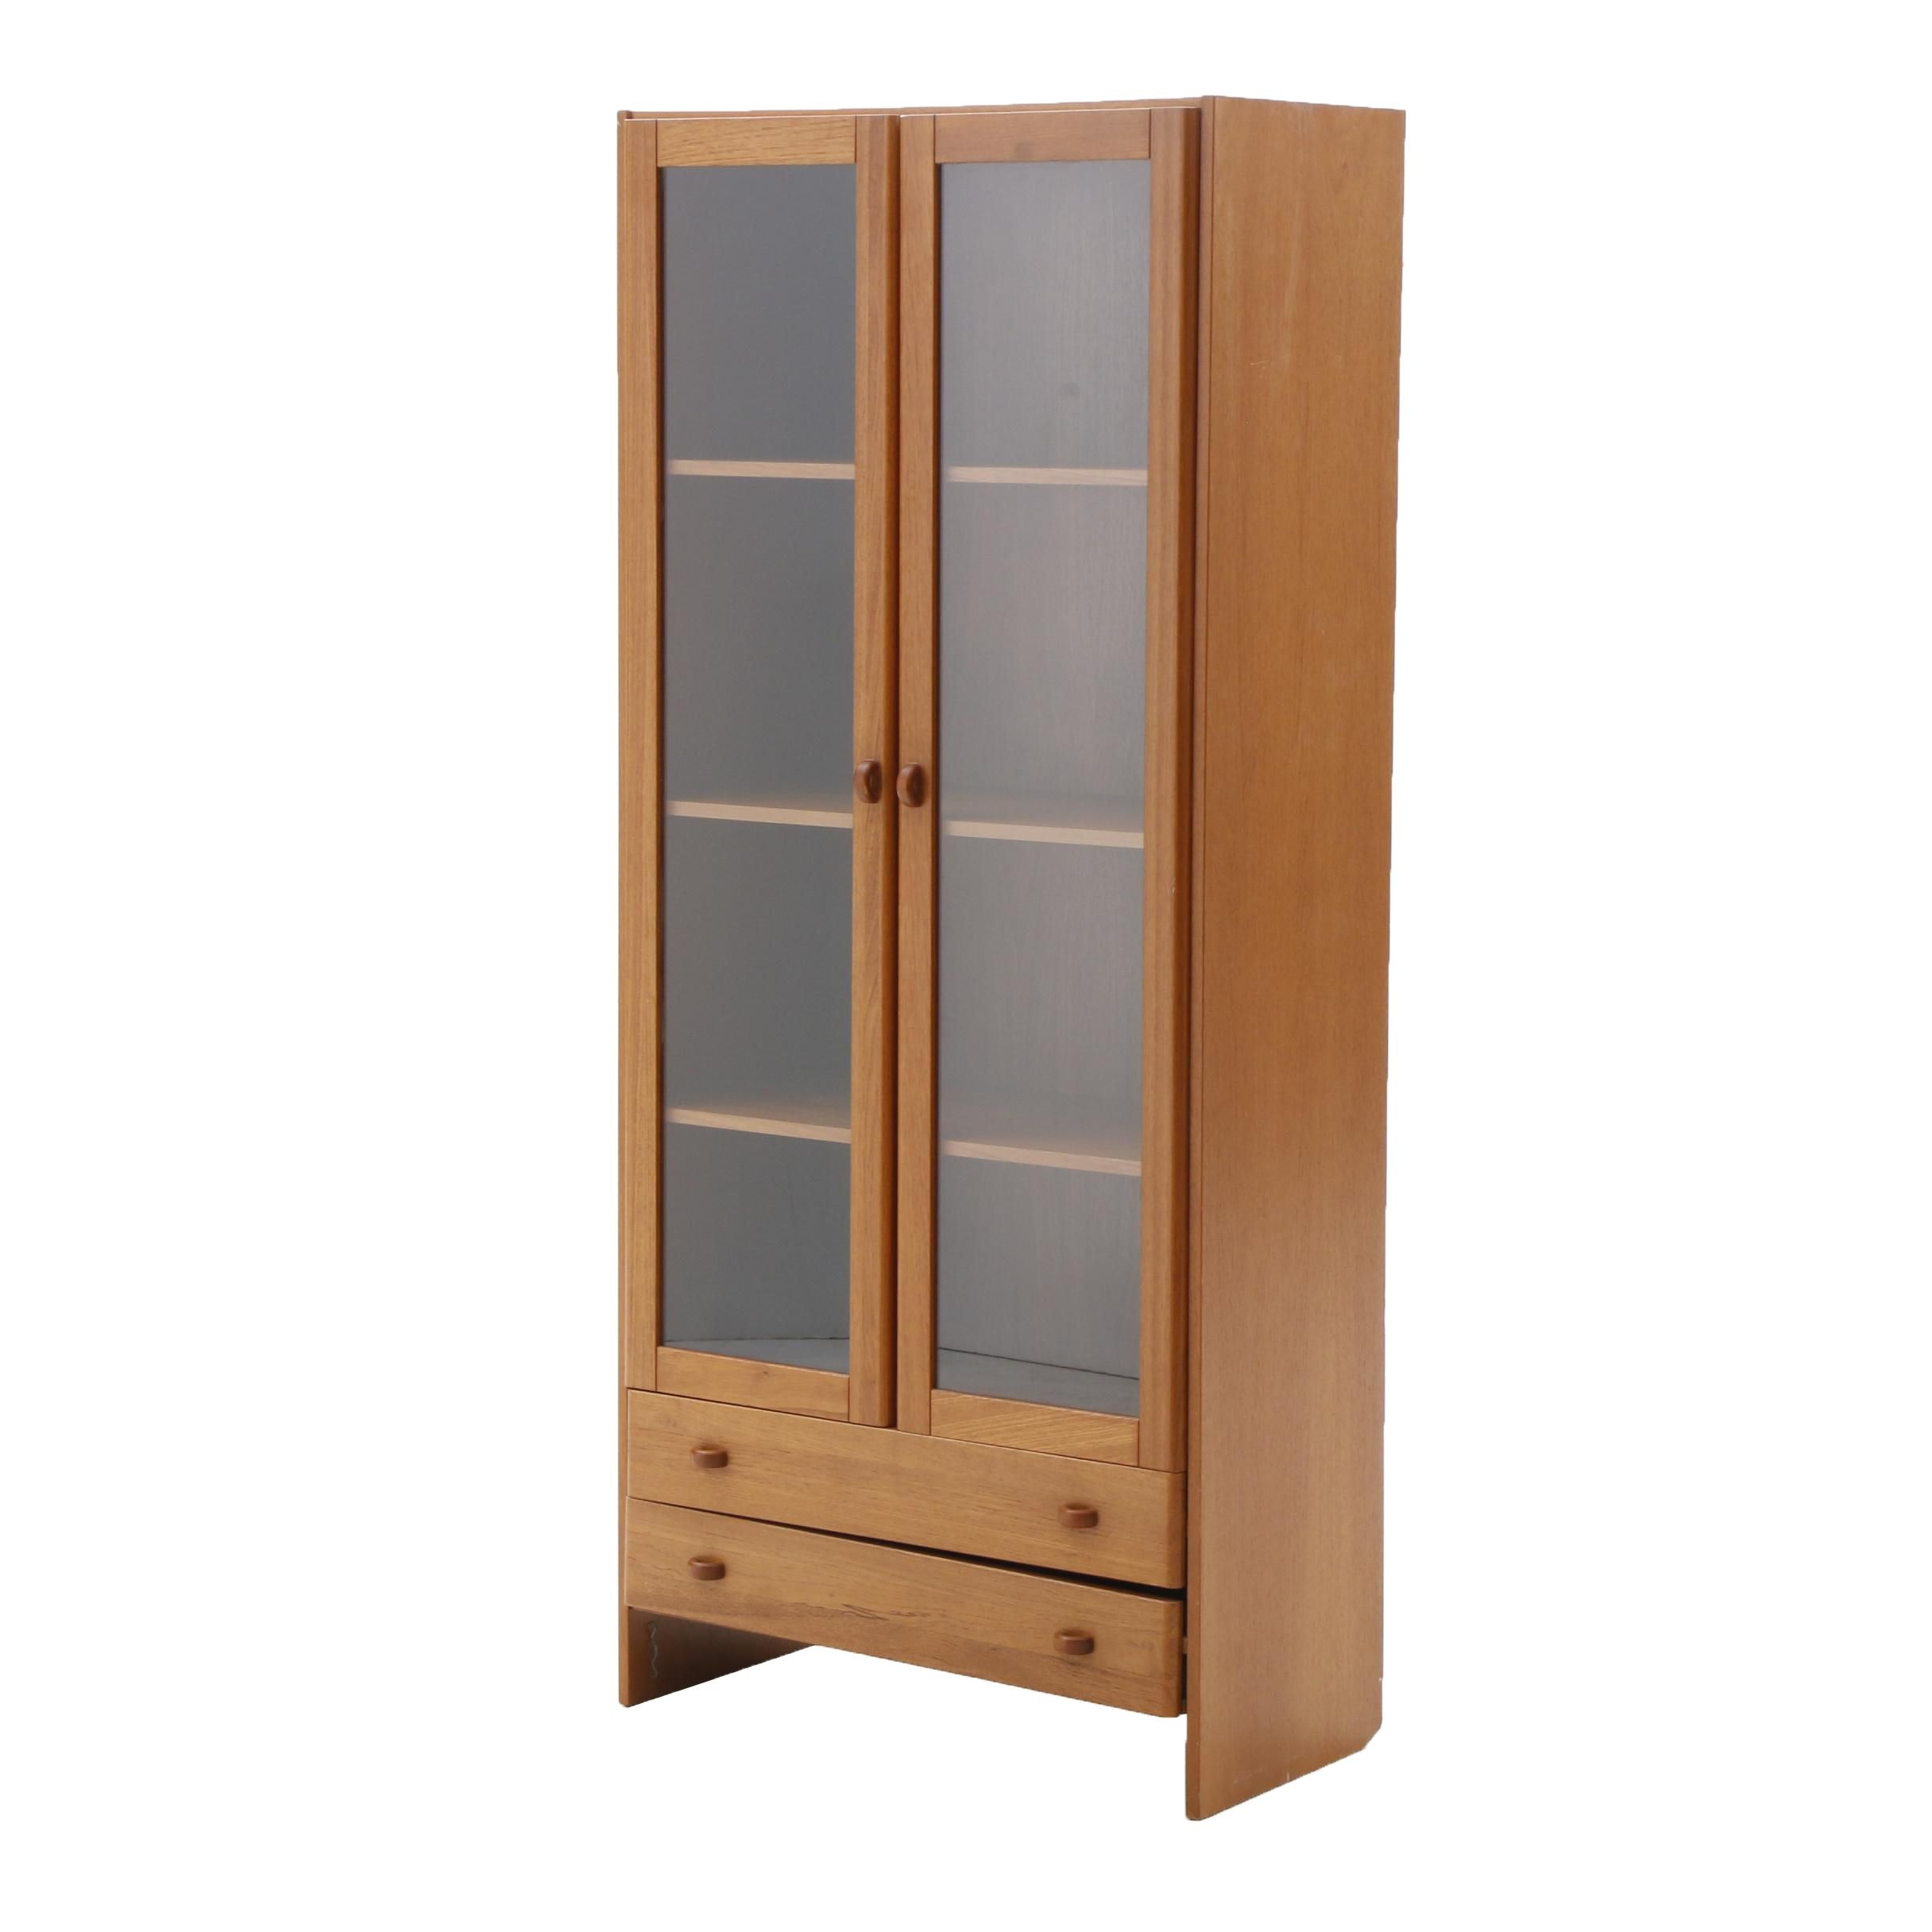 Danish Modern Cabinet Bookcase in Teak by Domino Mobler